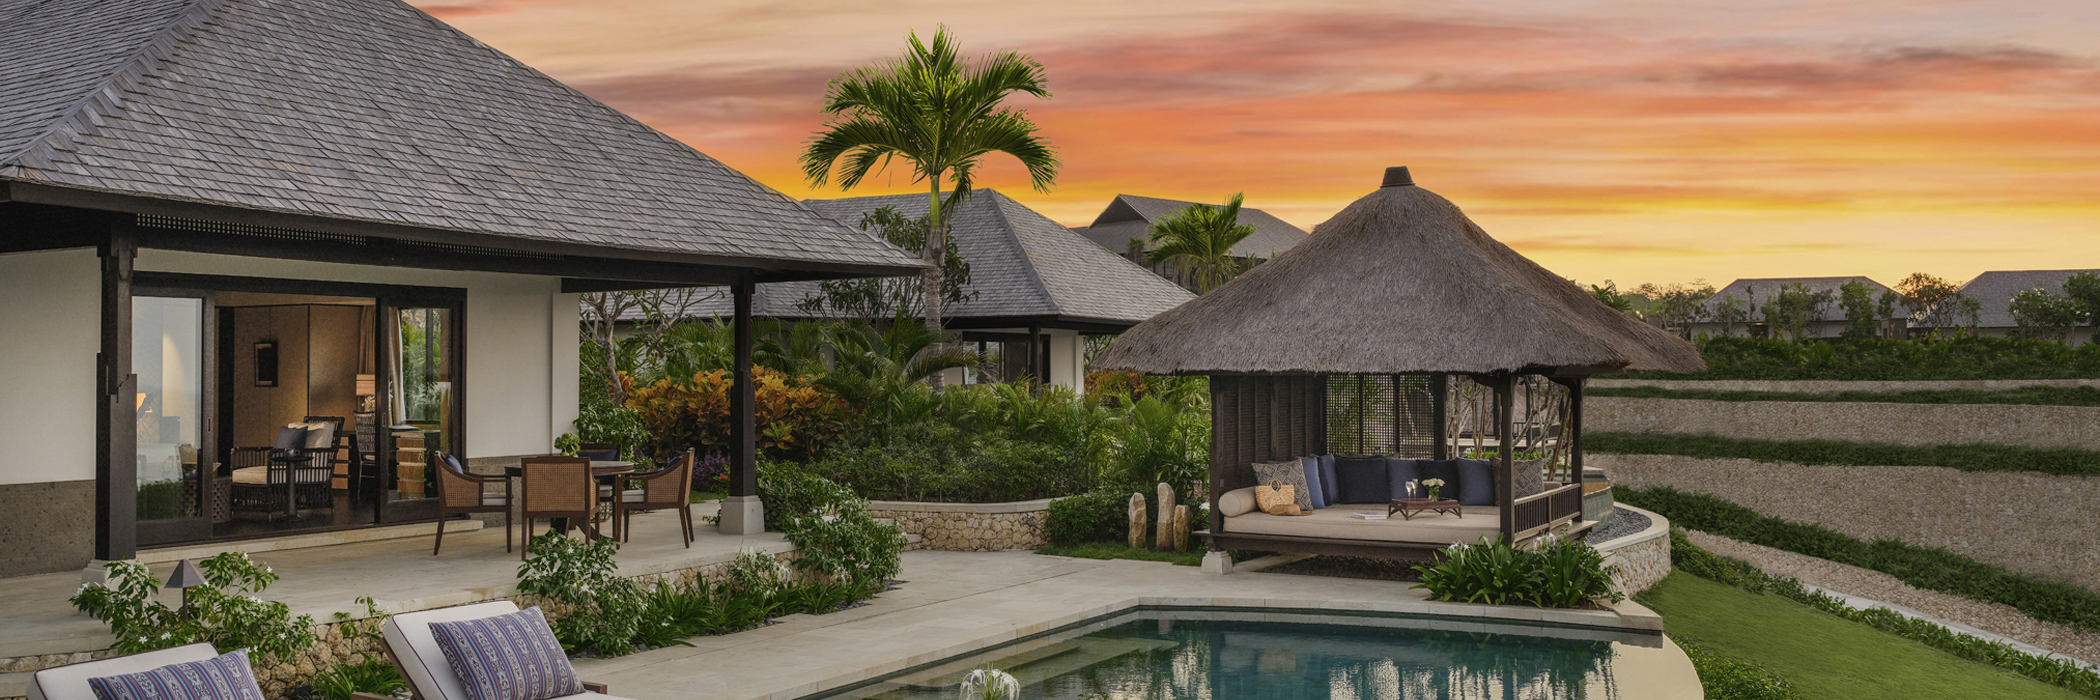 Raffles Bali - Raffles Bali, an intimate oasis of Emotional Wellbeing, First Raffles for Indonesia's famous tropical paradise